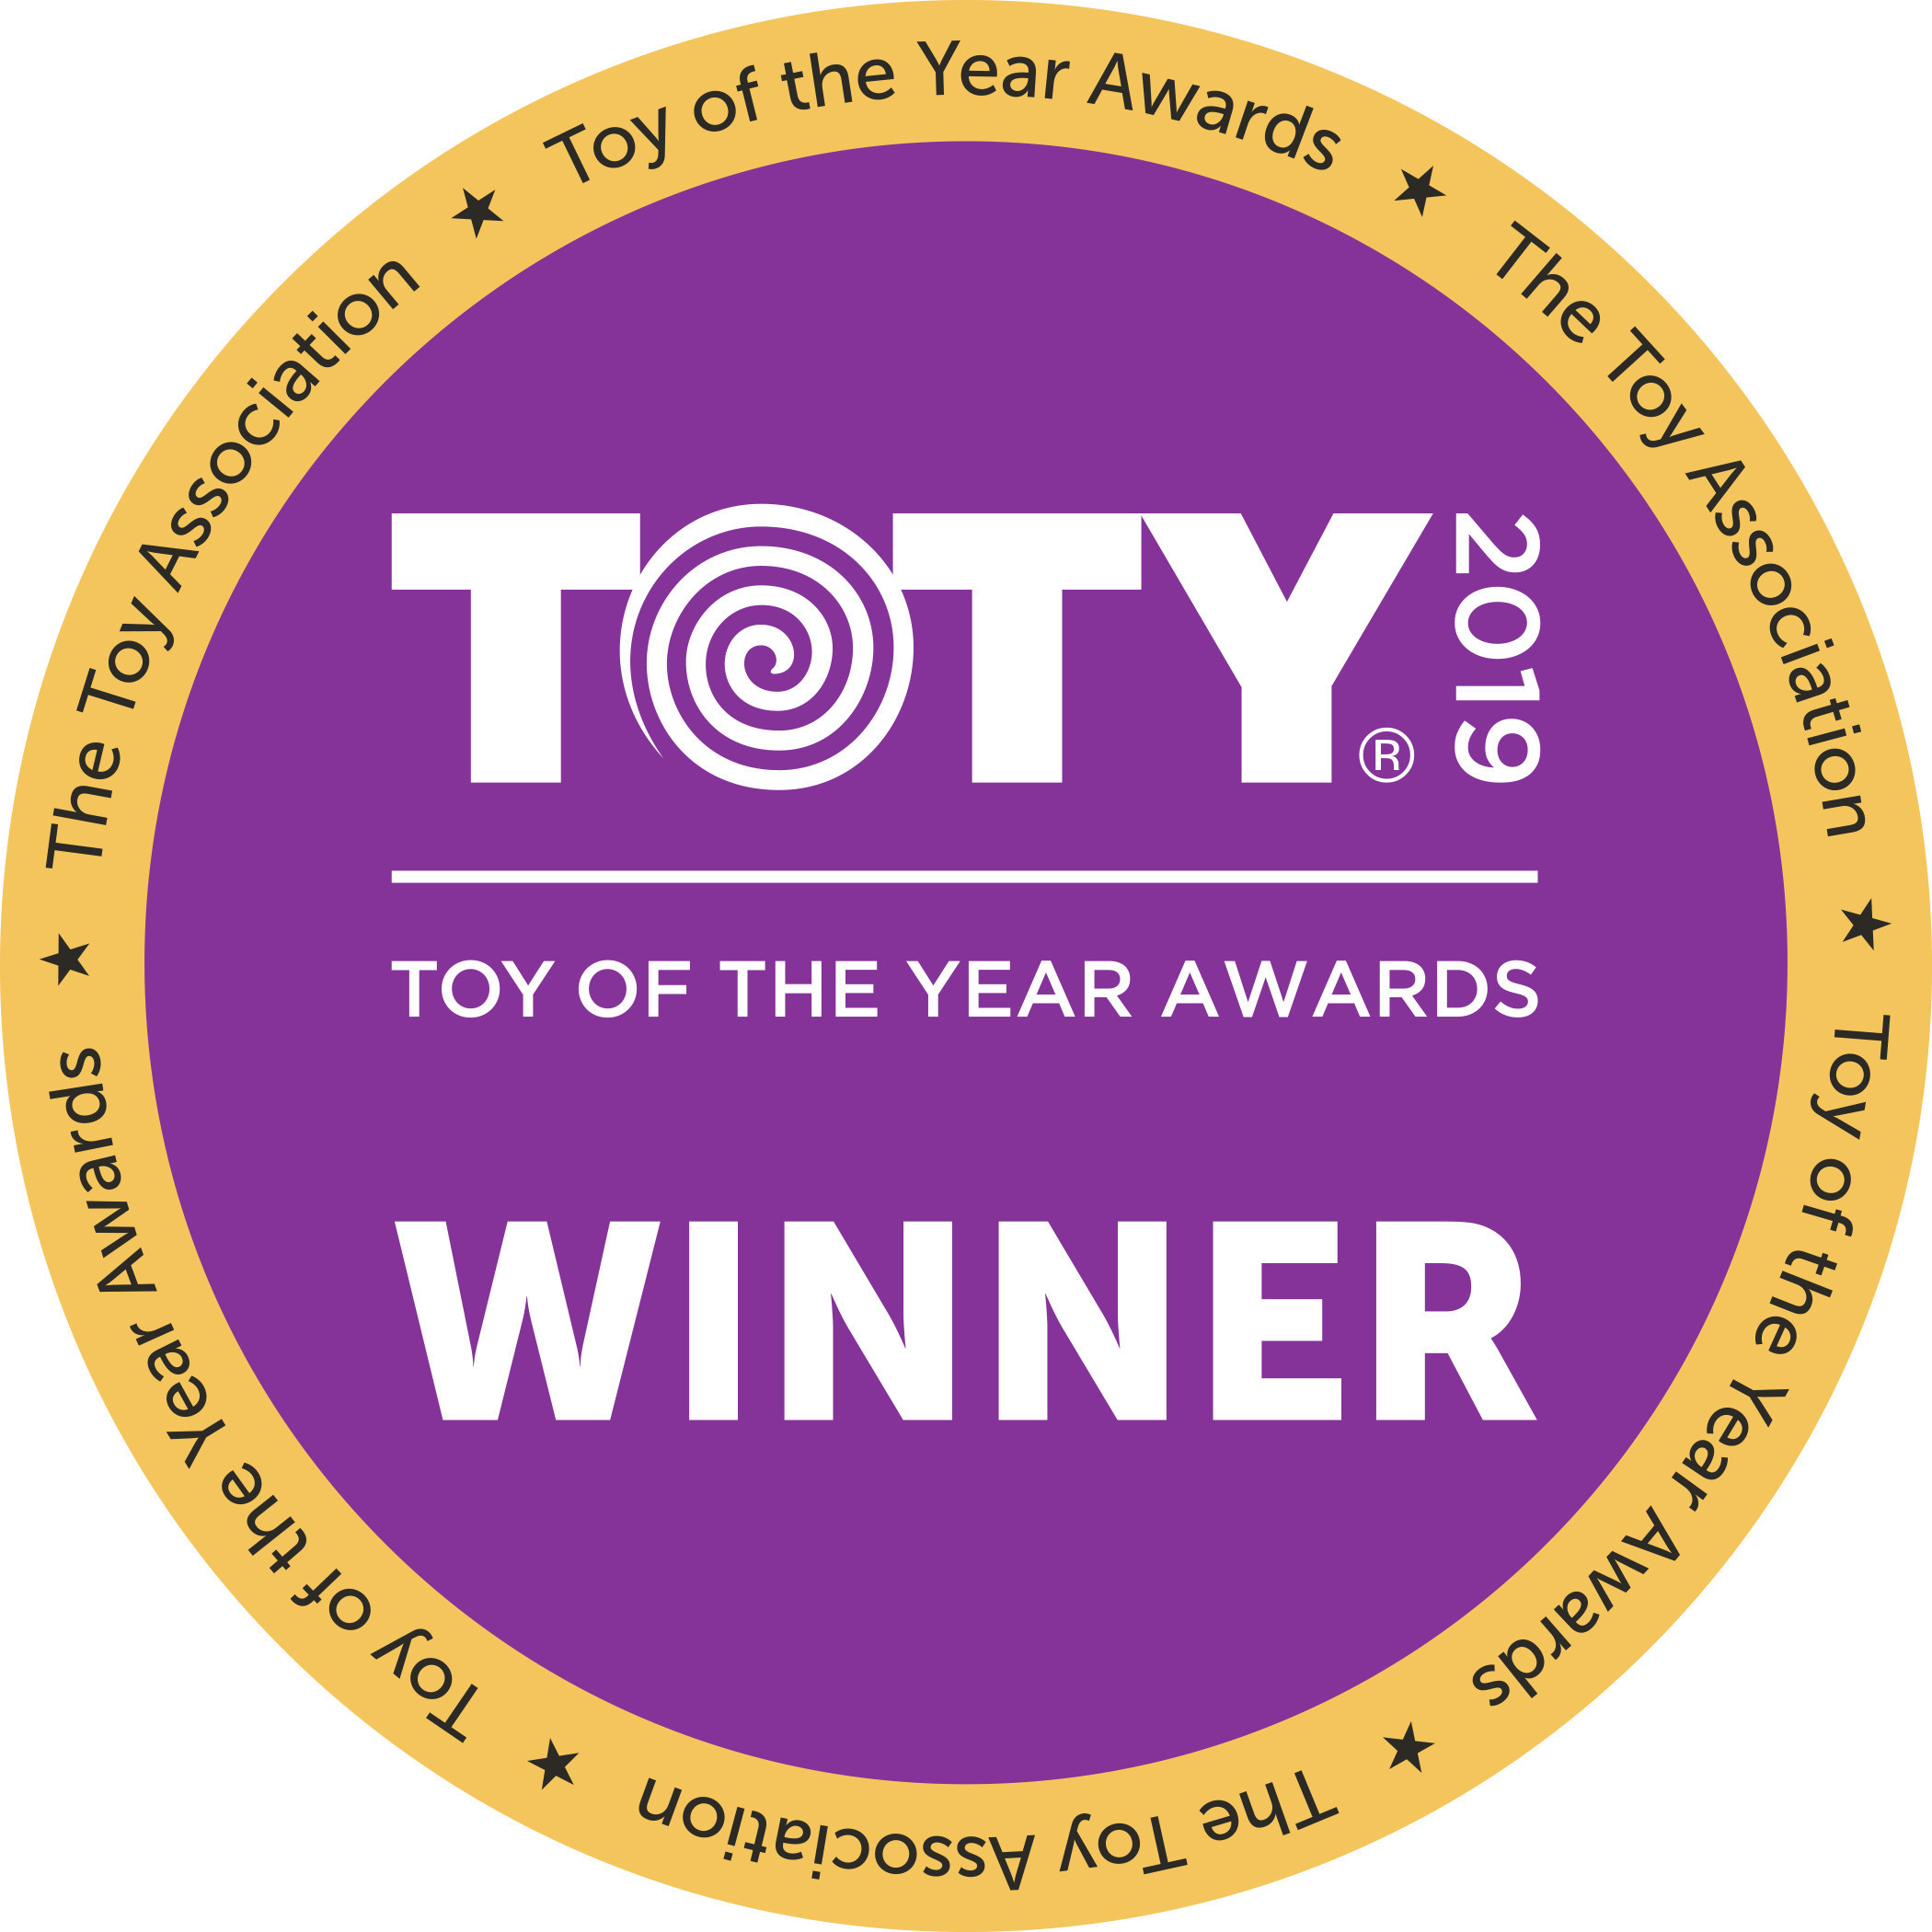 Mattel, Inc. won the 2019 Toy of The Year Award in the Infant/Preschool category for the Fisher-Price Laugh & Learn Smart Learning Home and the Preschool category for the Fisher-Price Think & Learn Rocktopus.